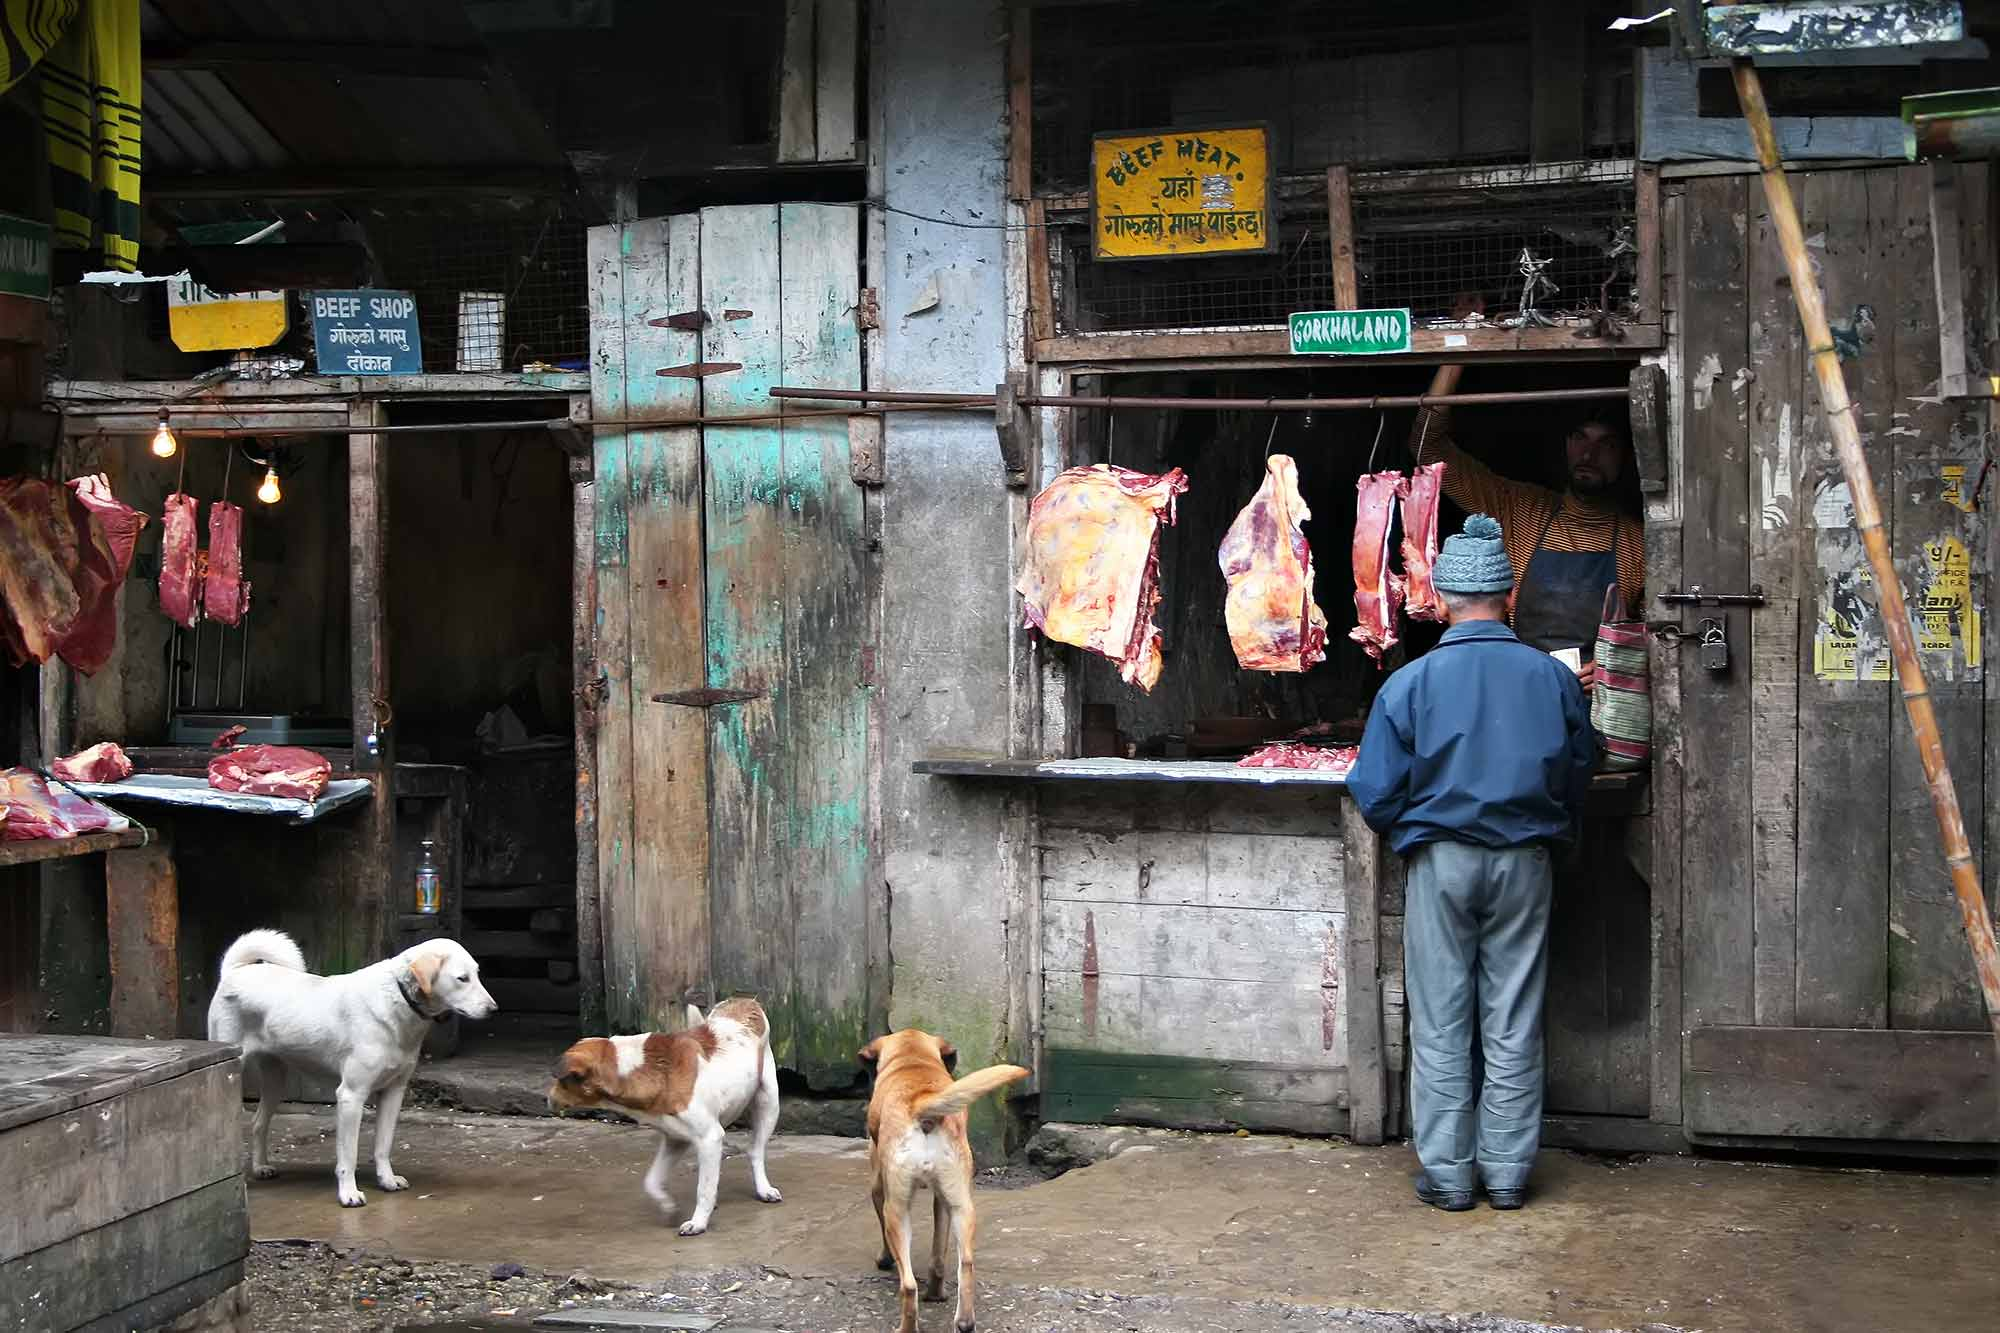 A beef shop in Darjeeling, India. © Ulli Maier & Nisa Maier